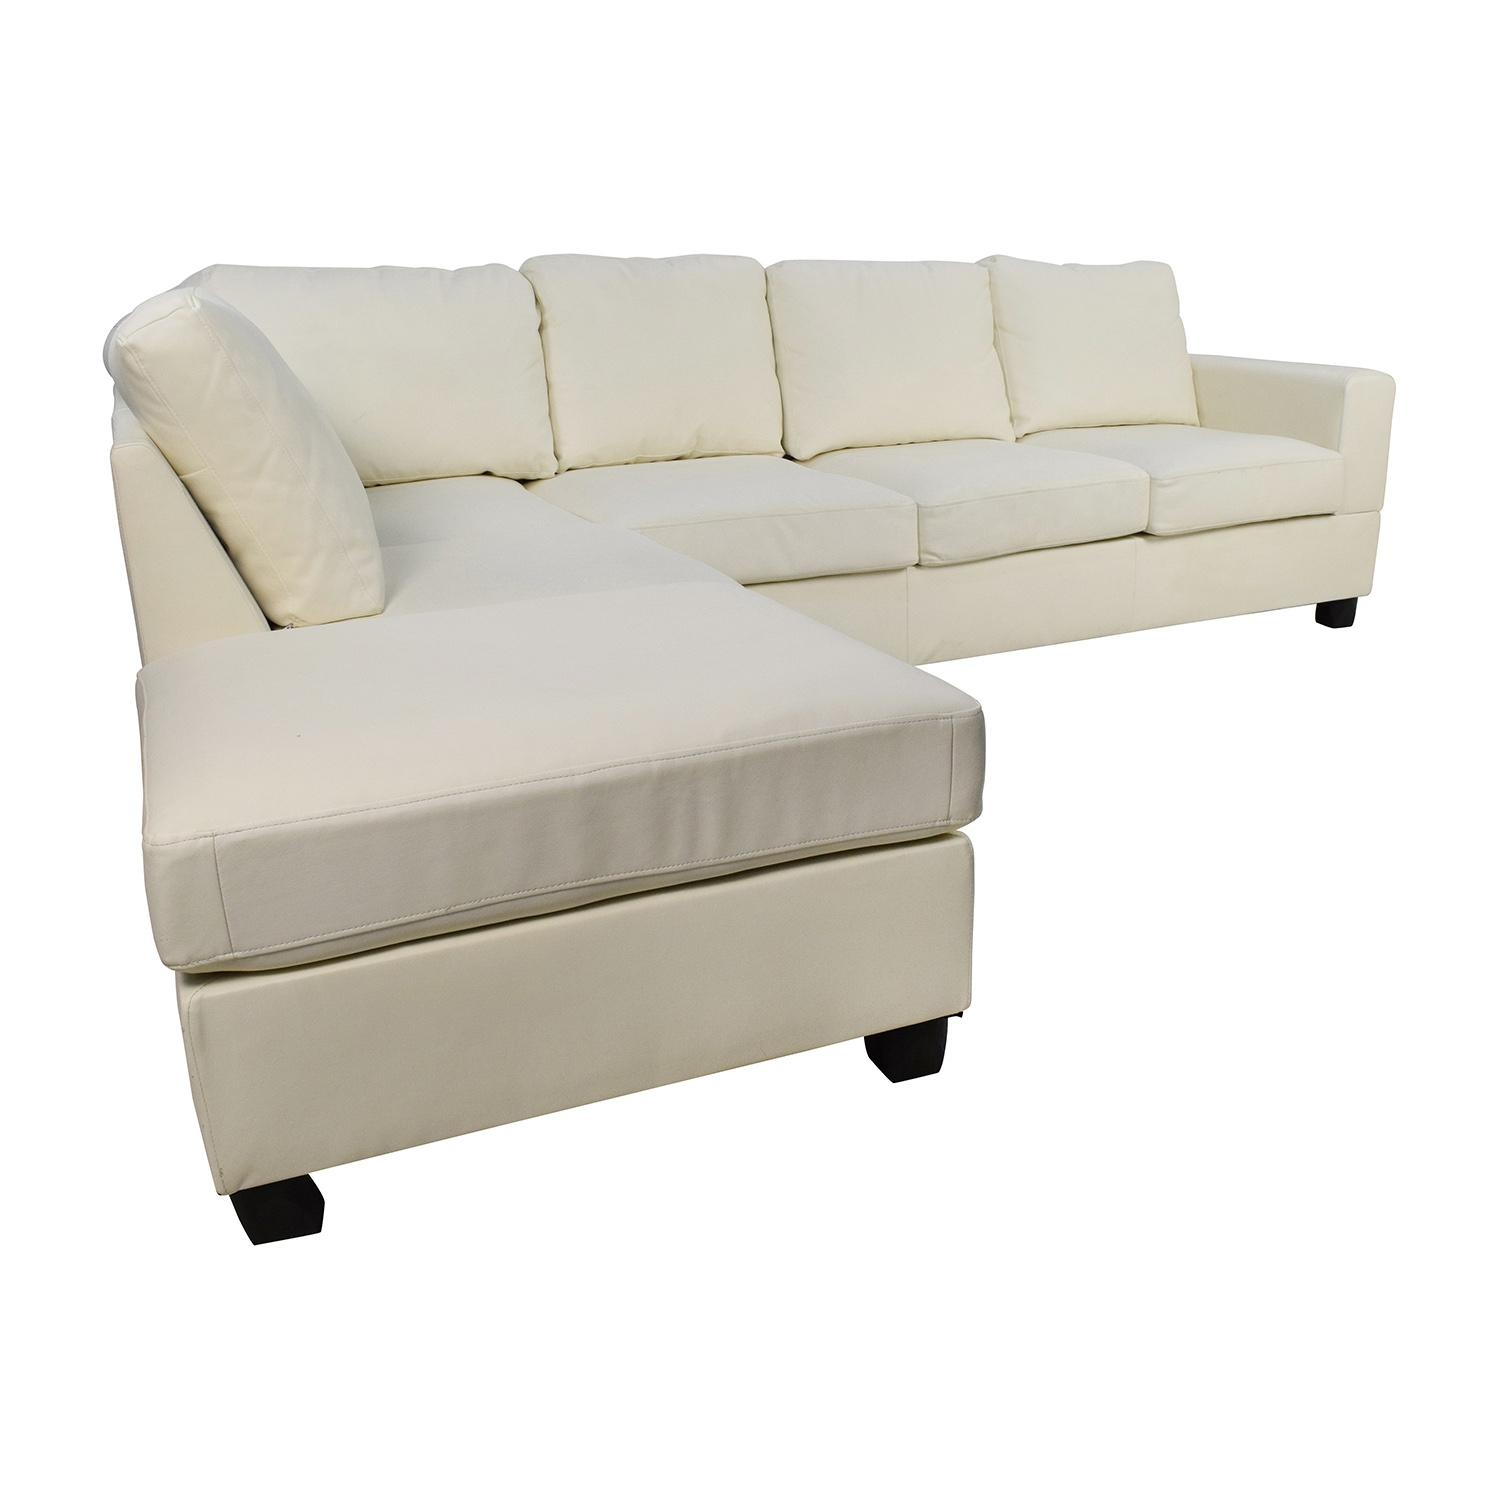 20 Best Collection Of White Leather Corner Sofa: 20 Best Collection Of Used Sectionals